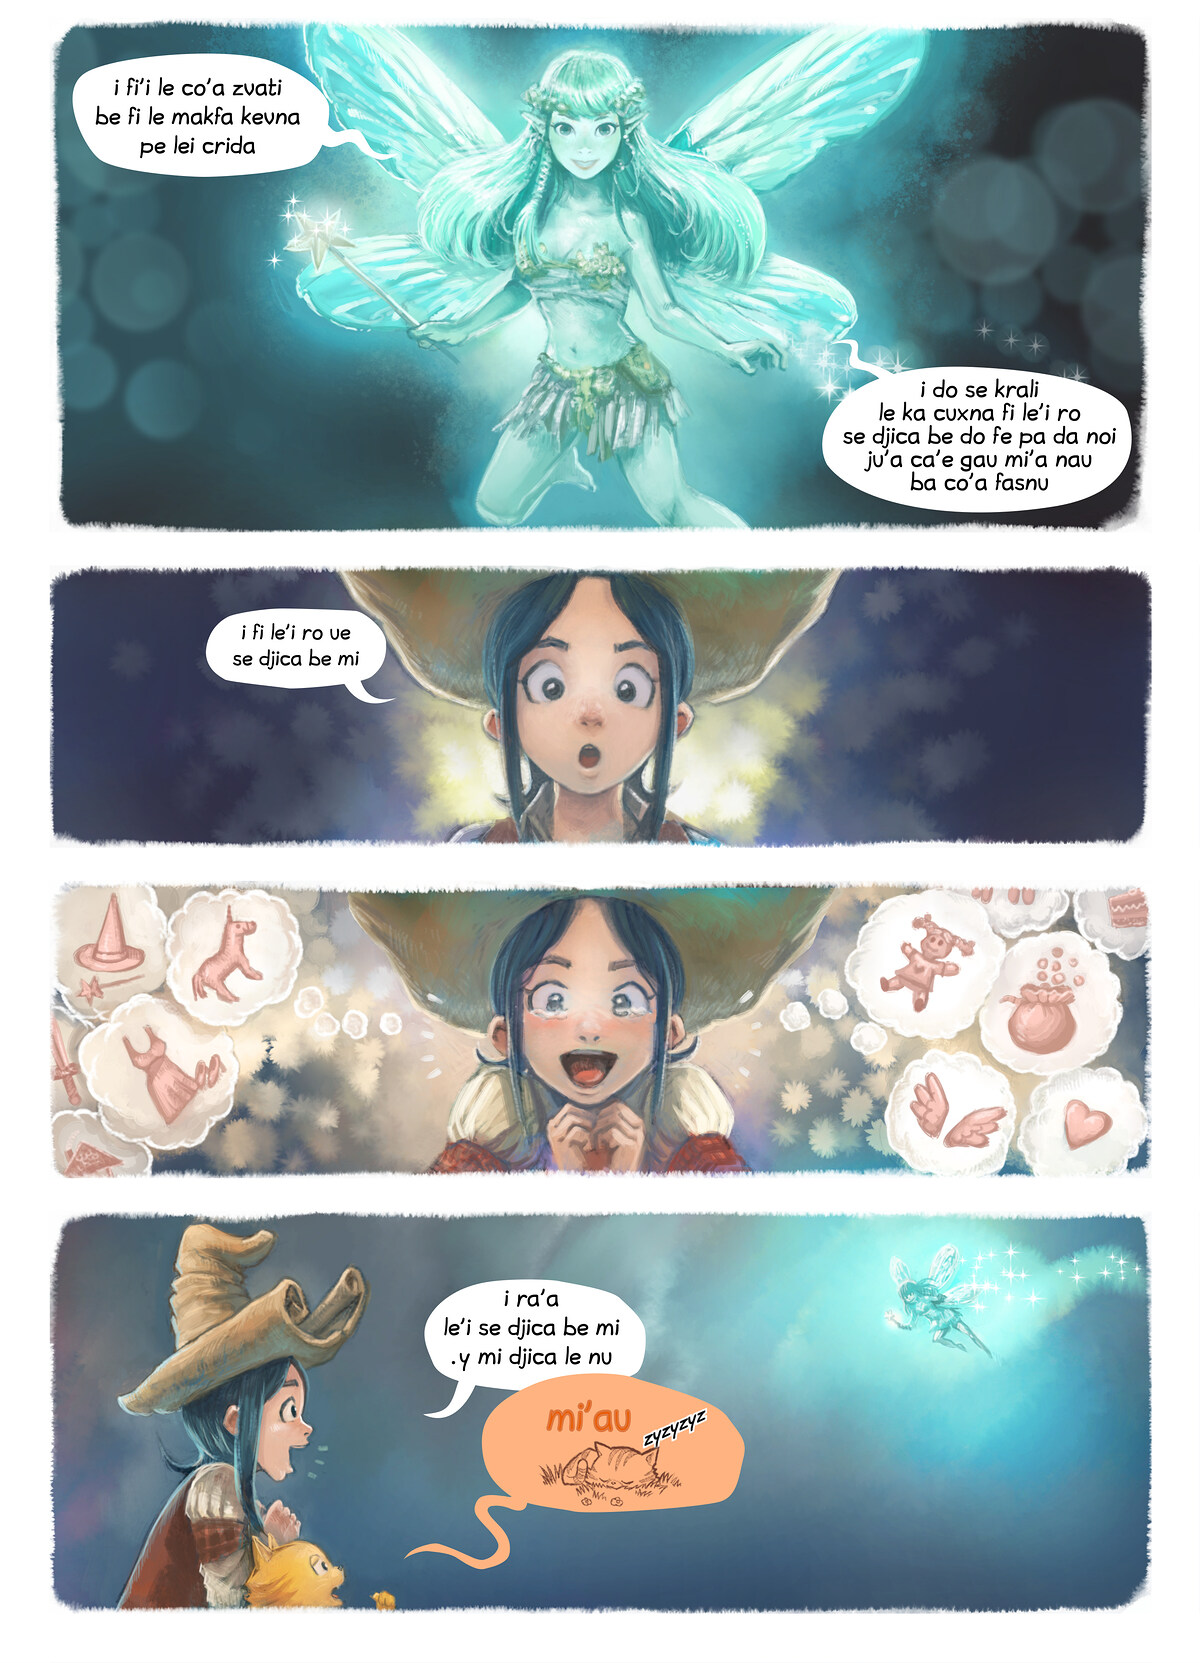 A webcomic page of Pepper&Carrot, pagbu 7 [jb], papri 4